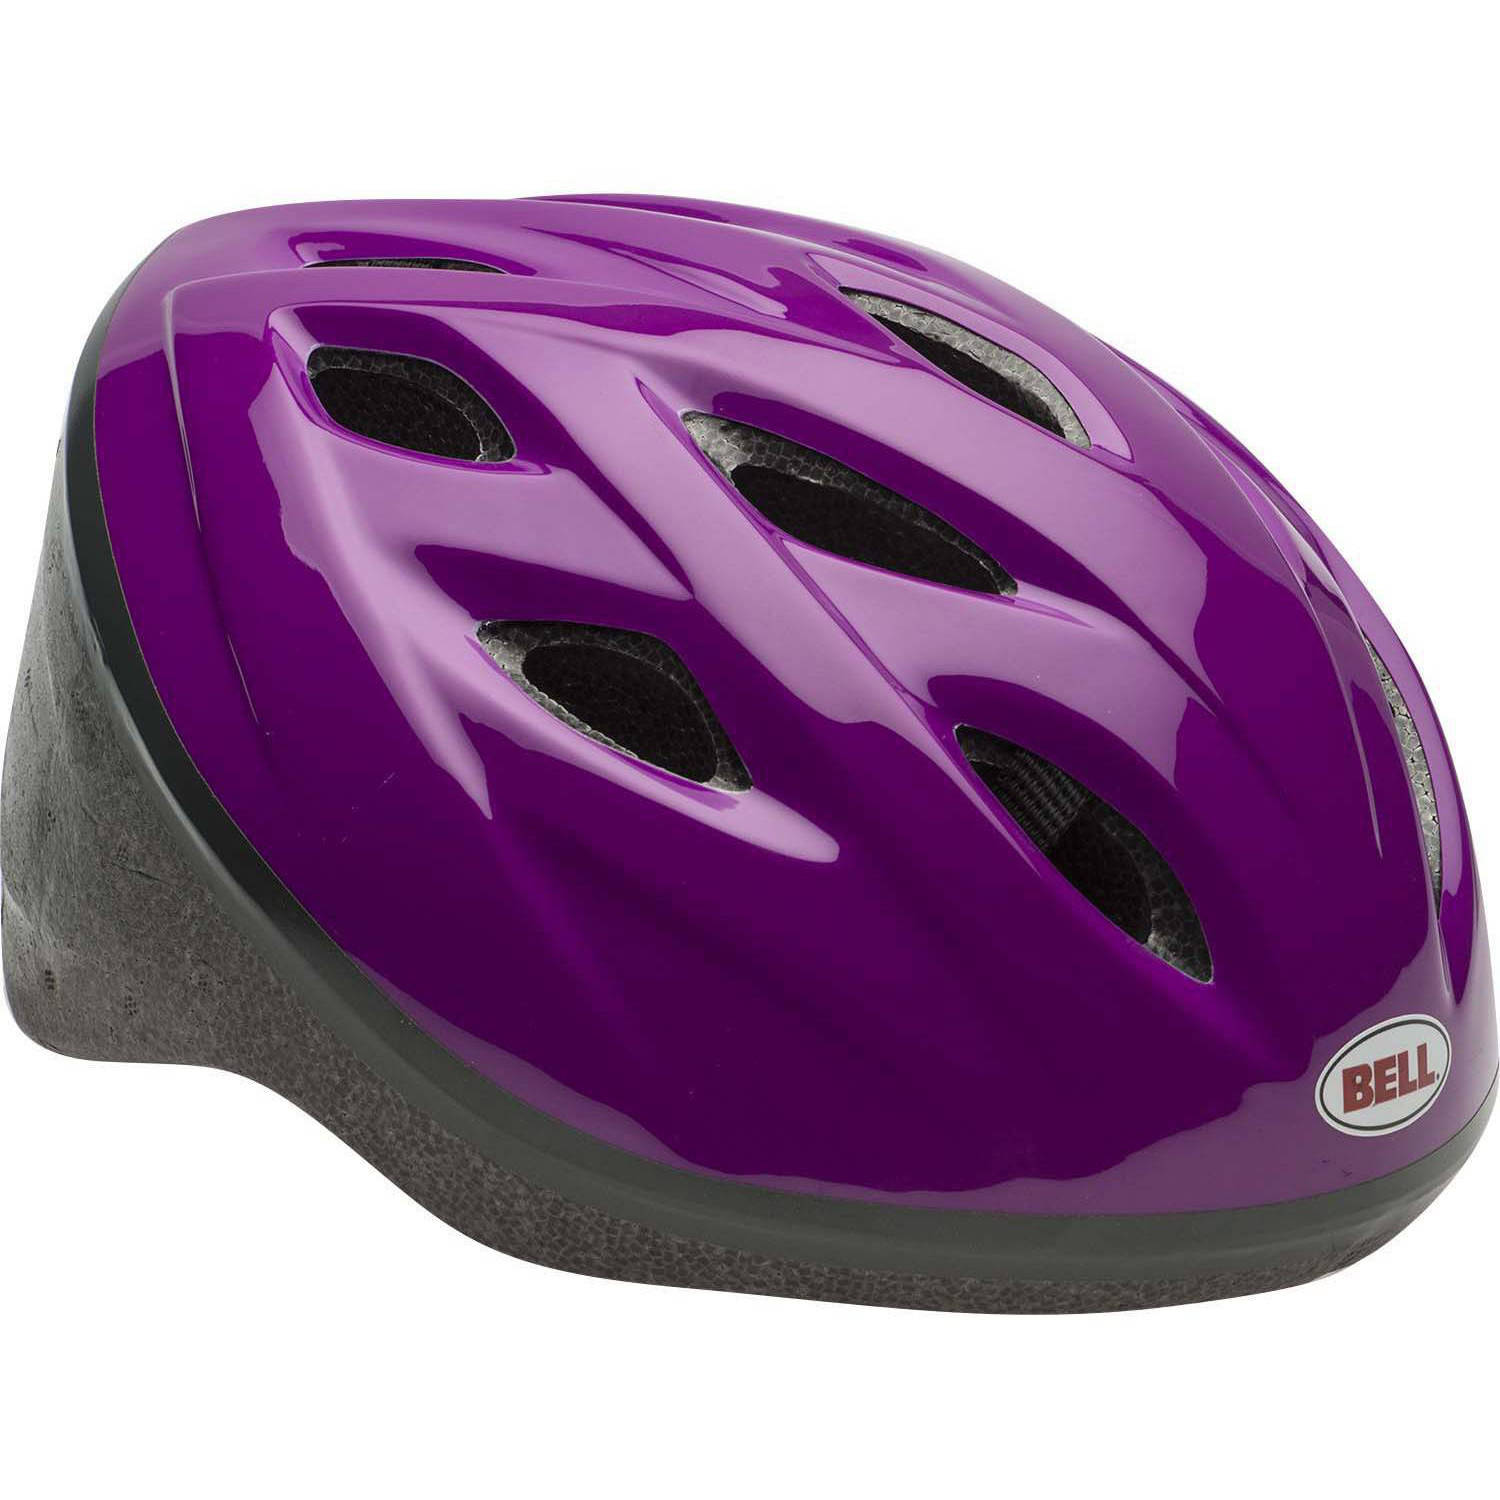 Bell Sports Star Child Helmet Purple Walmart Com - Baby Safety Helmet Walmart